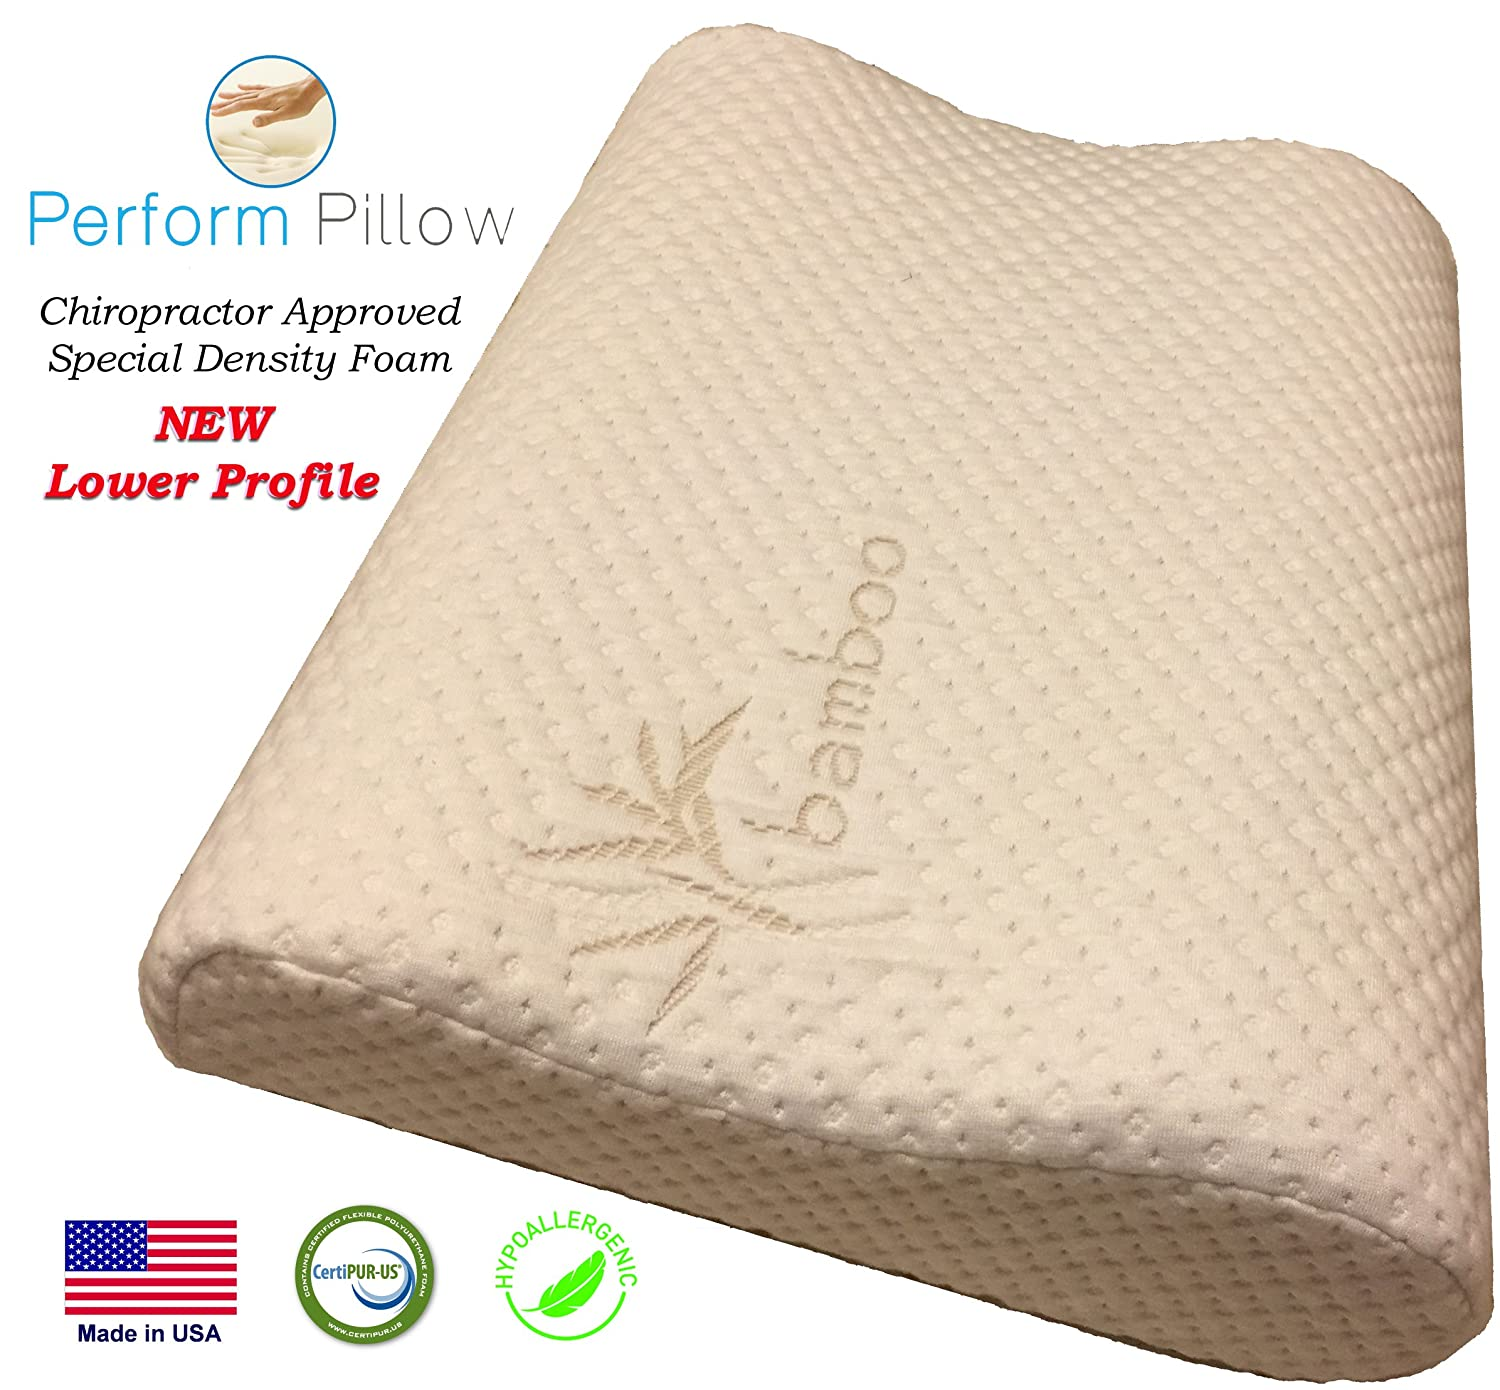 71b0657dea8e9 Thin Profile Memory Foam Neck Pillow - Orthopedic Contour - Chiropractor  Designed and Approved - Soft Bamboo Cover - Made in USA - Great for Neck  Pain